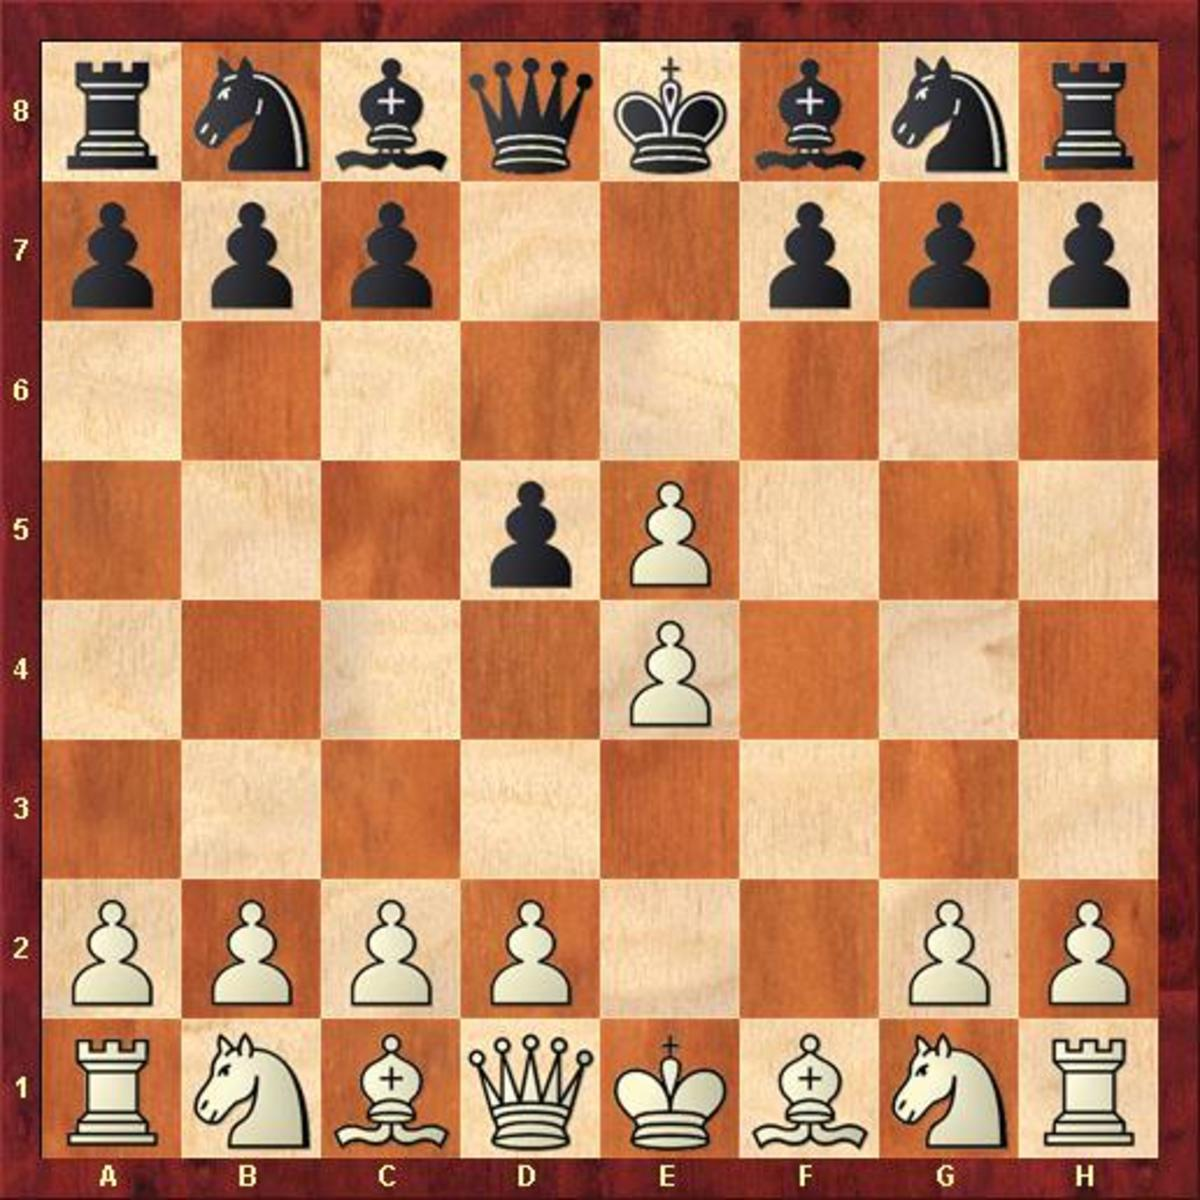 Black to play after 3. fxe5??